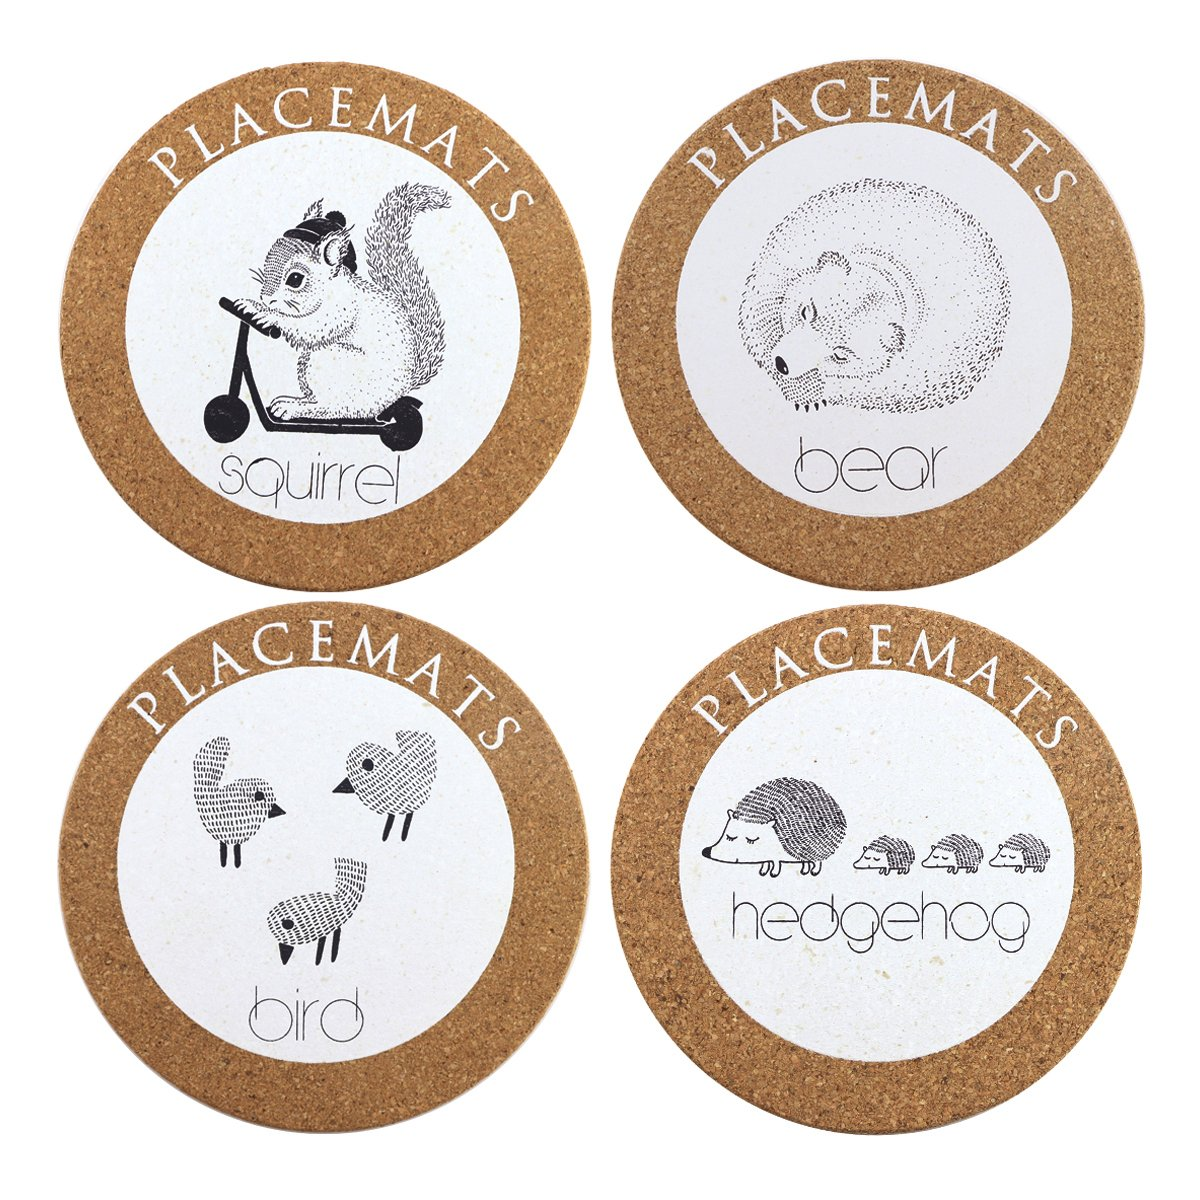 Finico 4 Pieces Large Cork Coasters For Drinks Absorbent and Reusable, Protect Furniture From Water, 6.7'' Diameter, 2/5 Thick